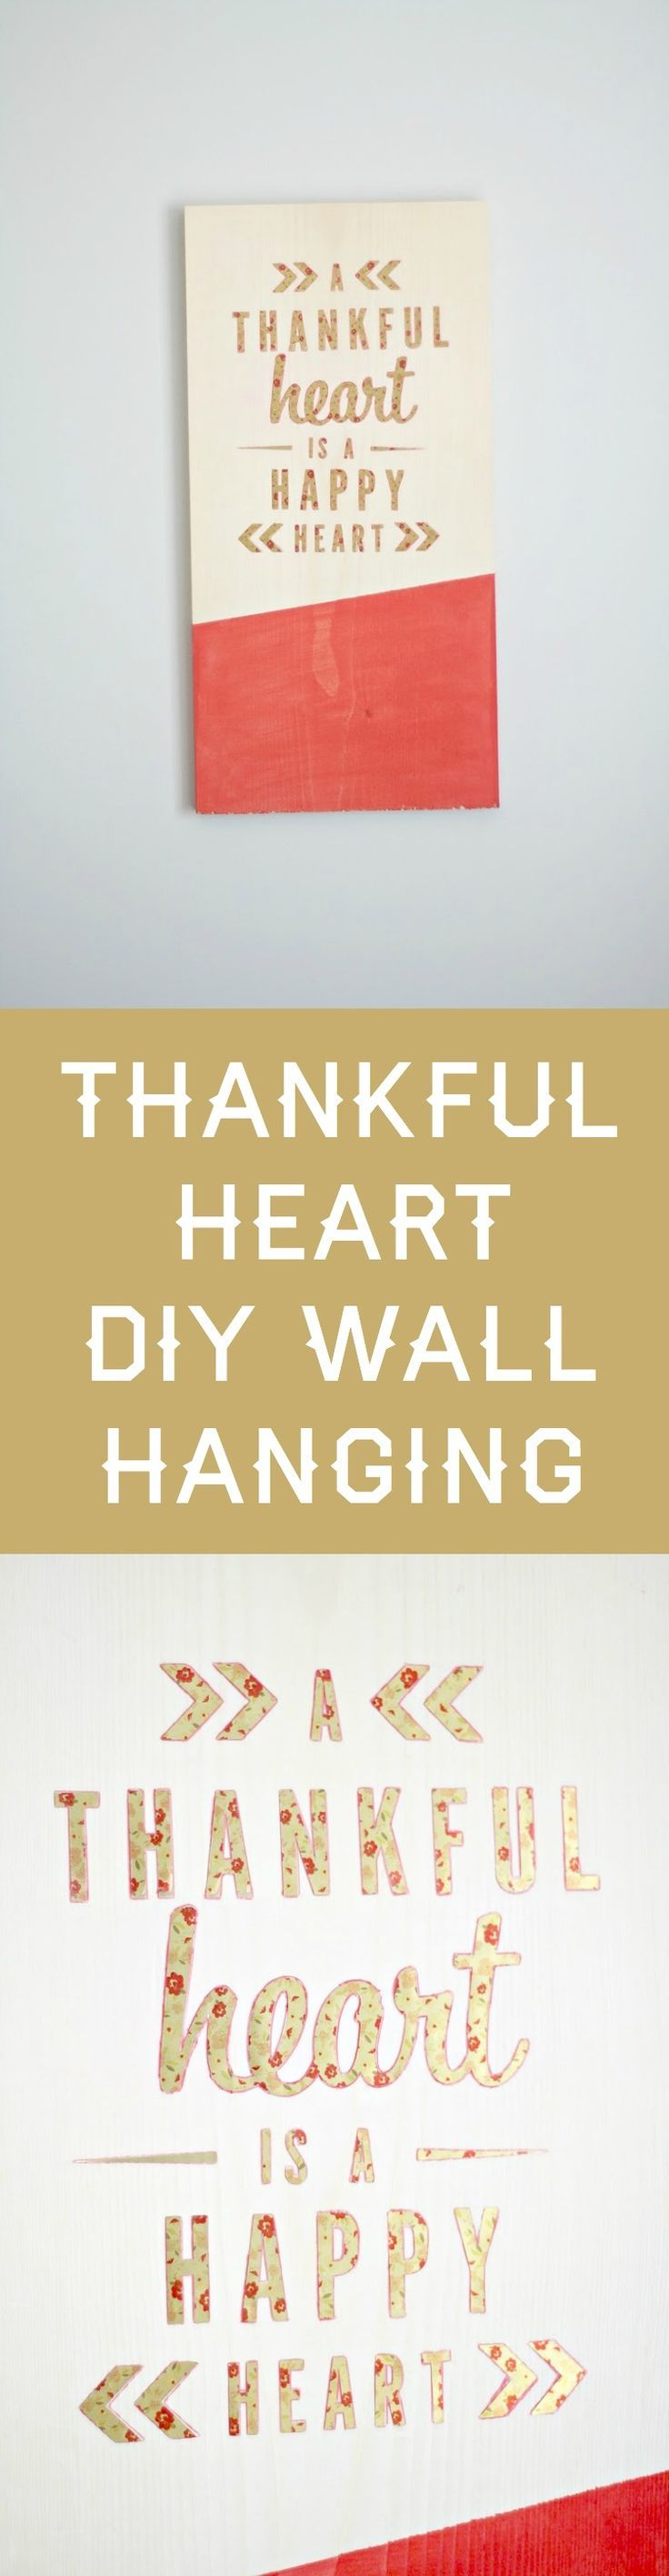 219 best Wall Art Ideas images on Pinterest | Craft ideas, Room wall ...